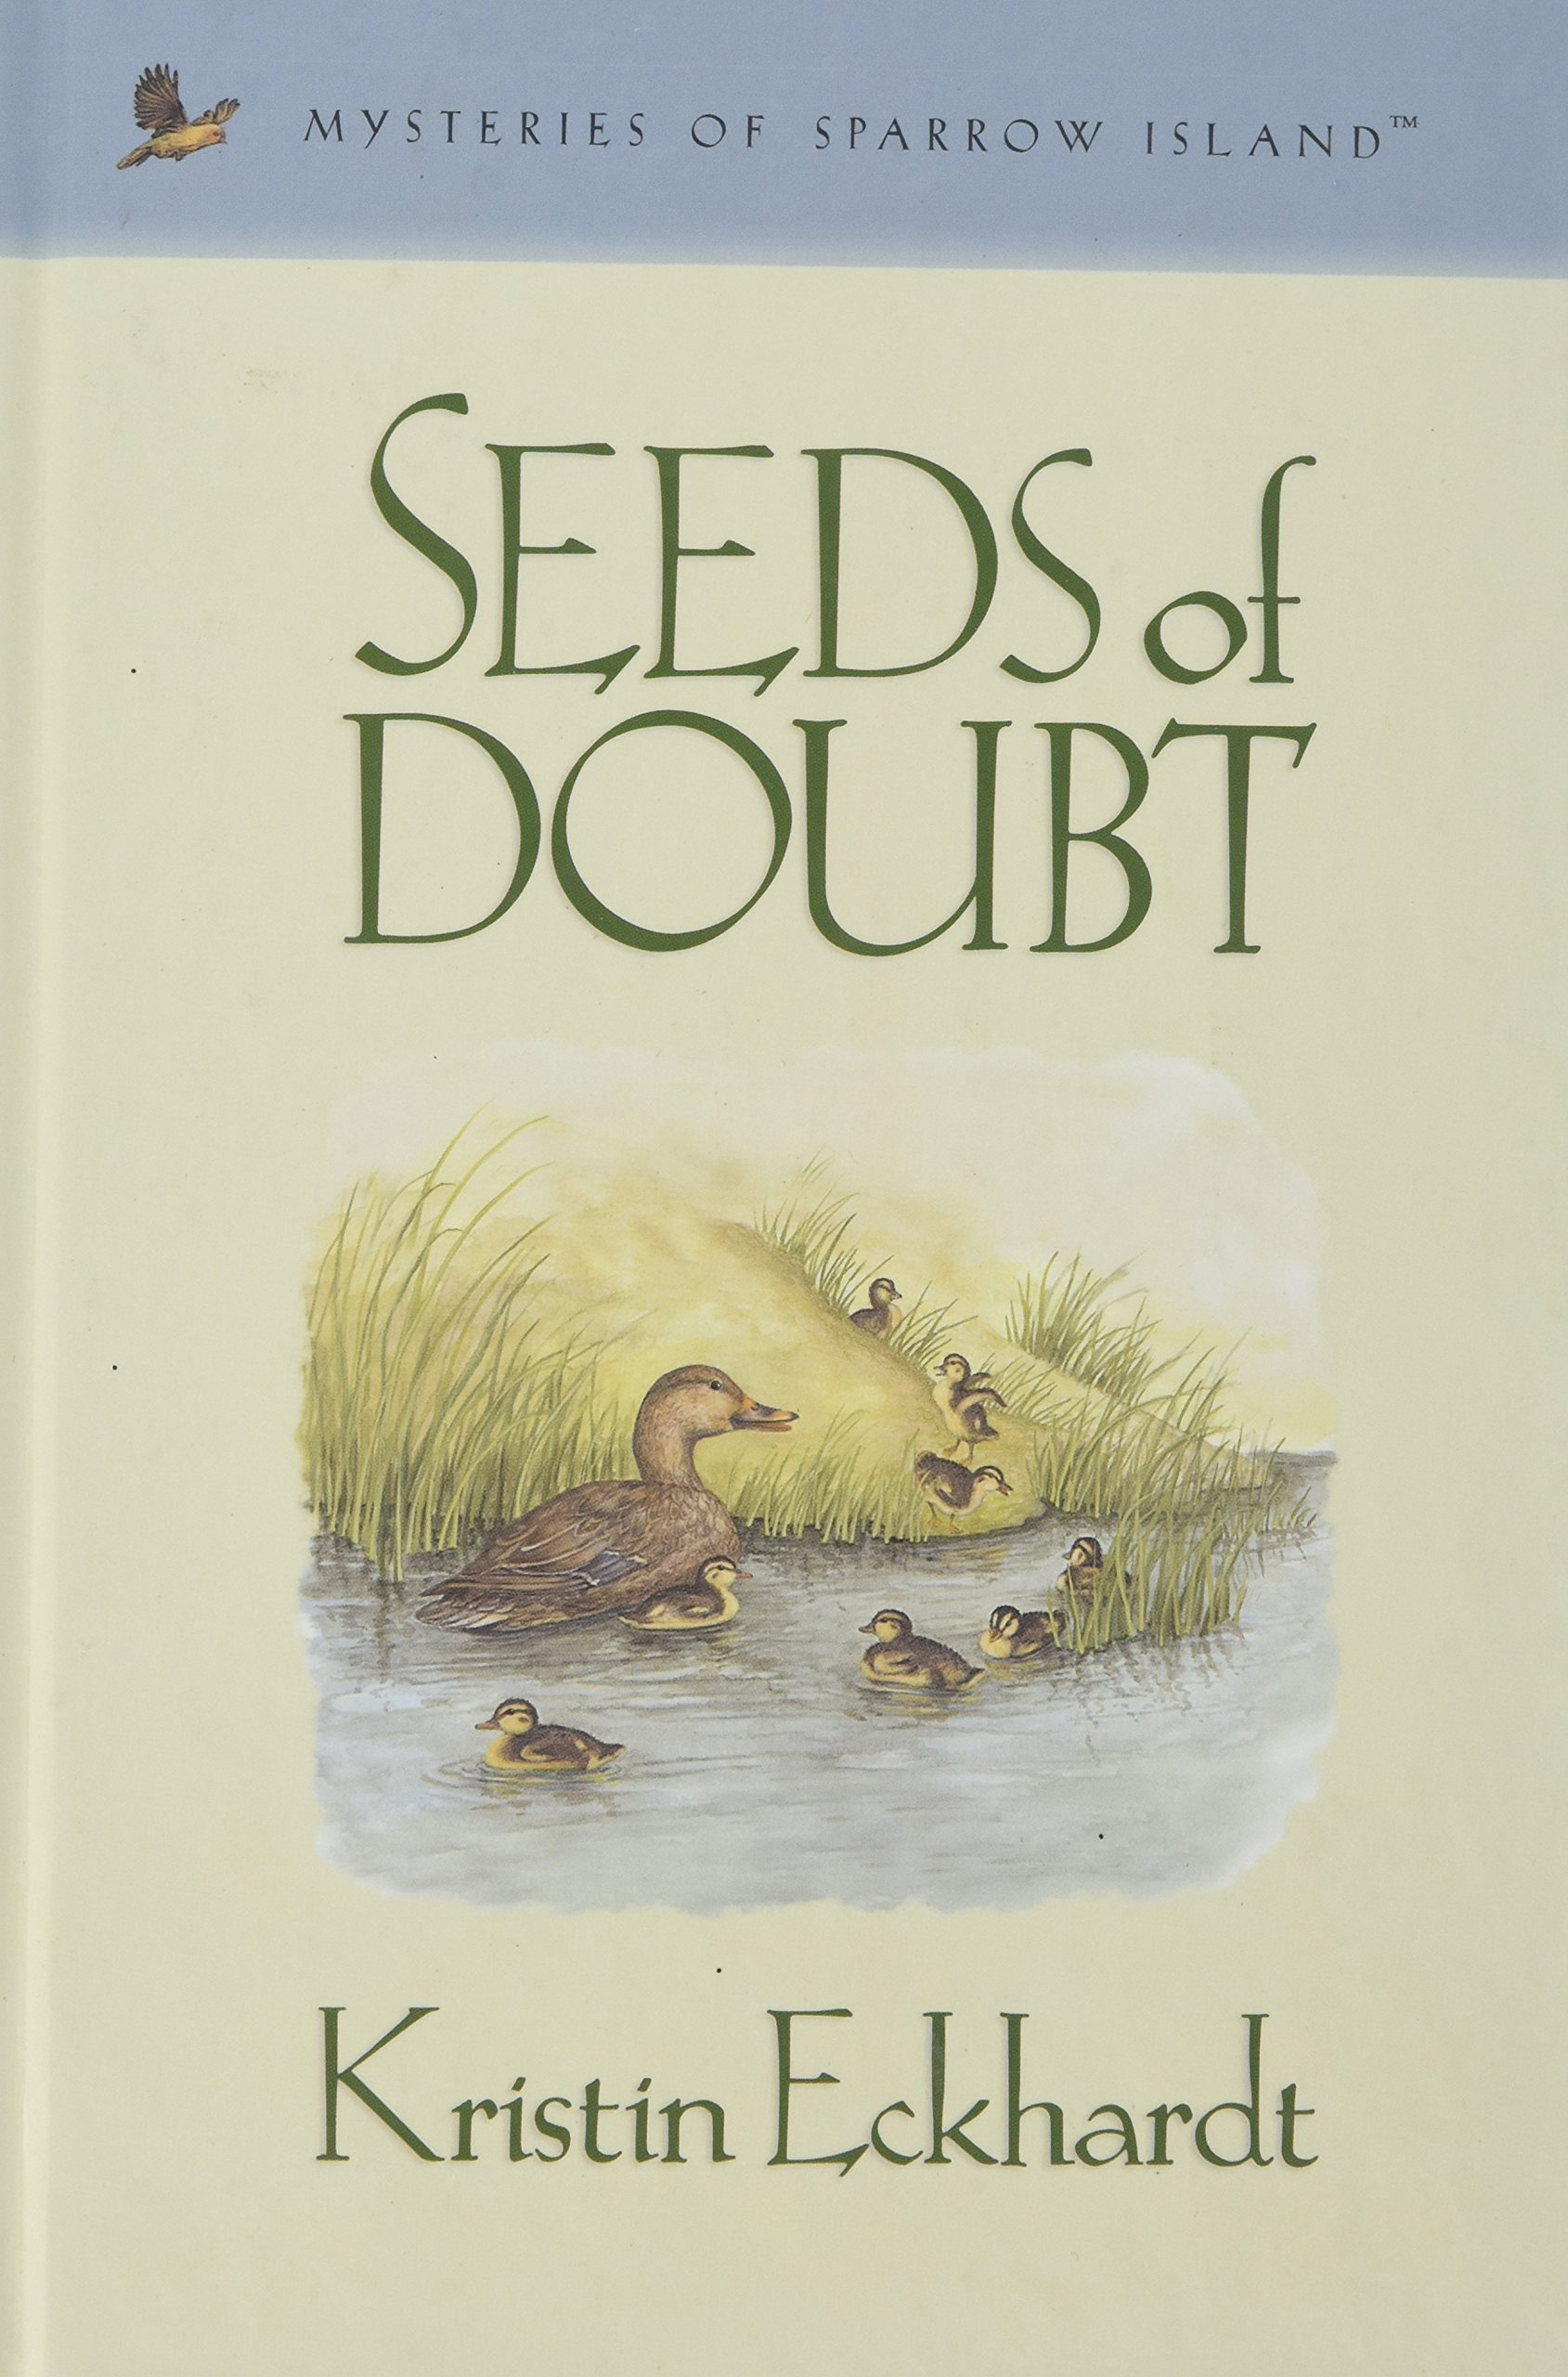 Seeds of Doubt (Mysteries of Sparrow Island #15) by Guideposts Books